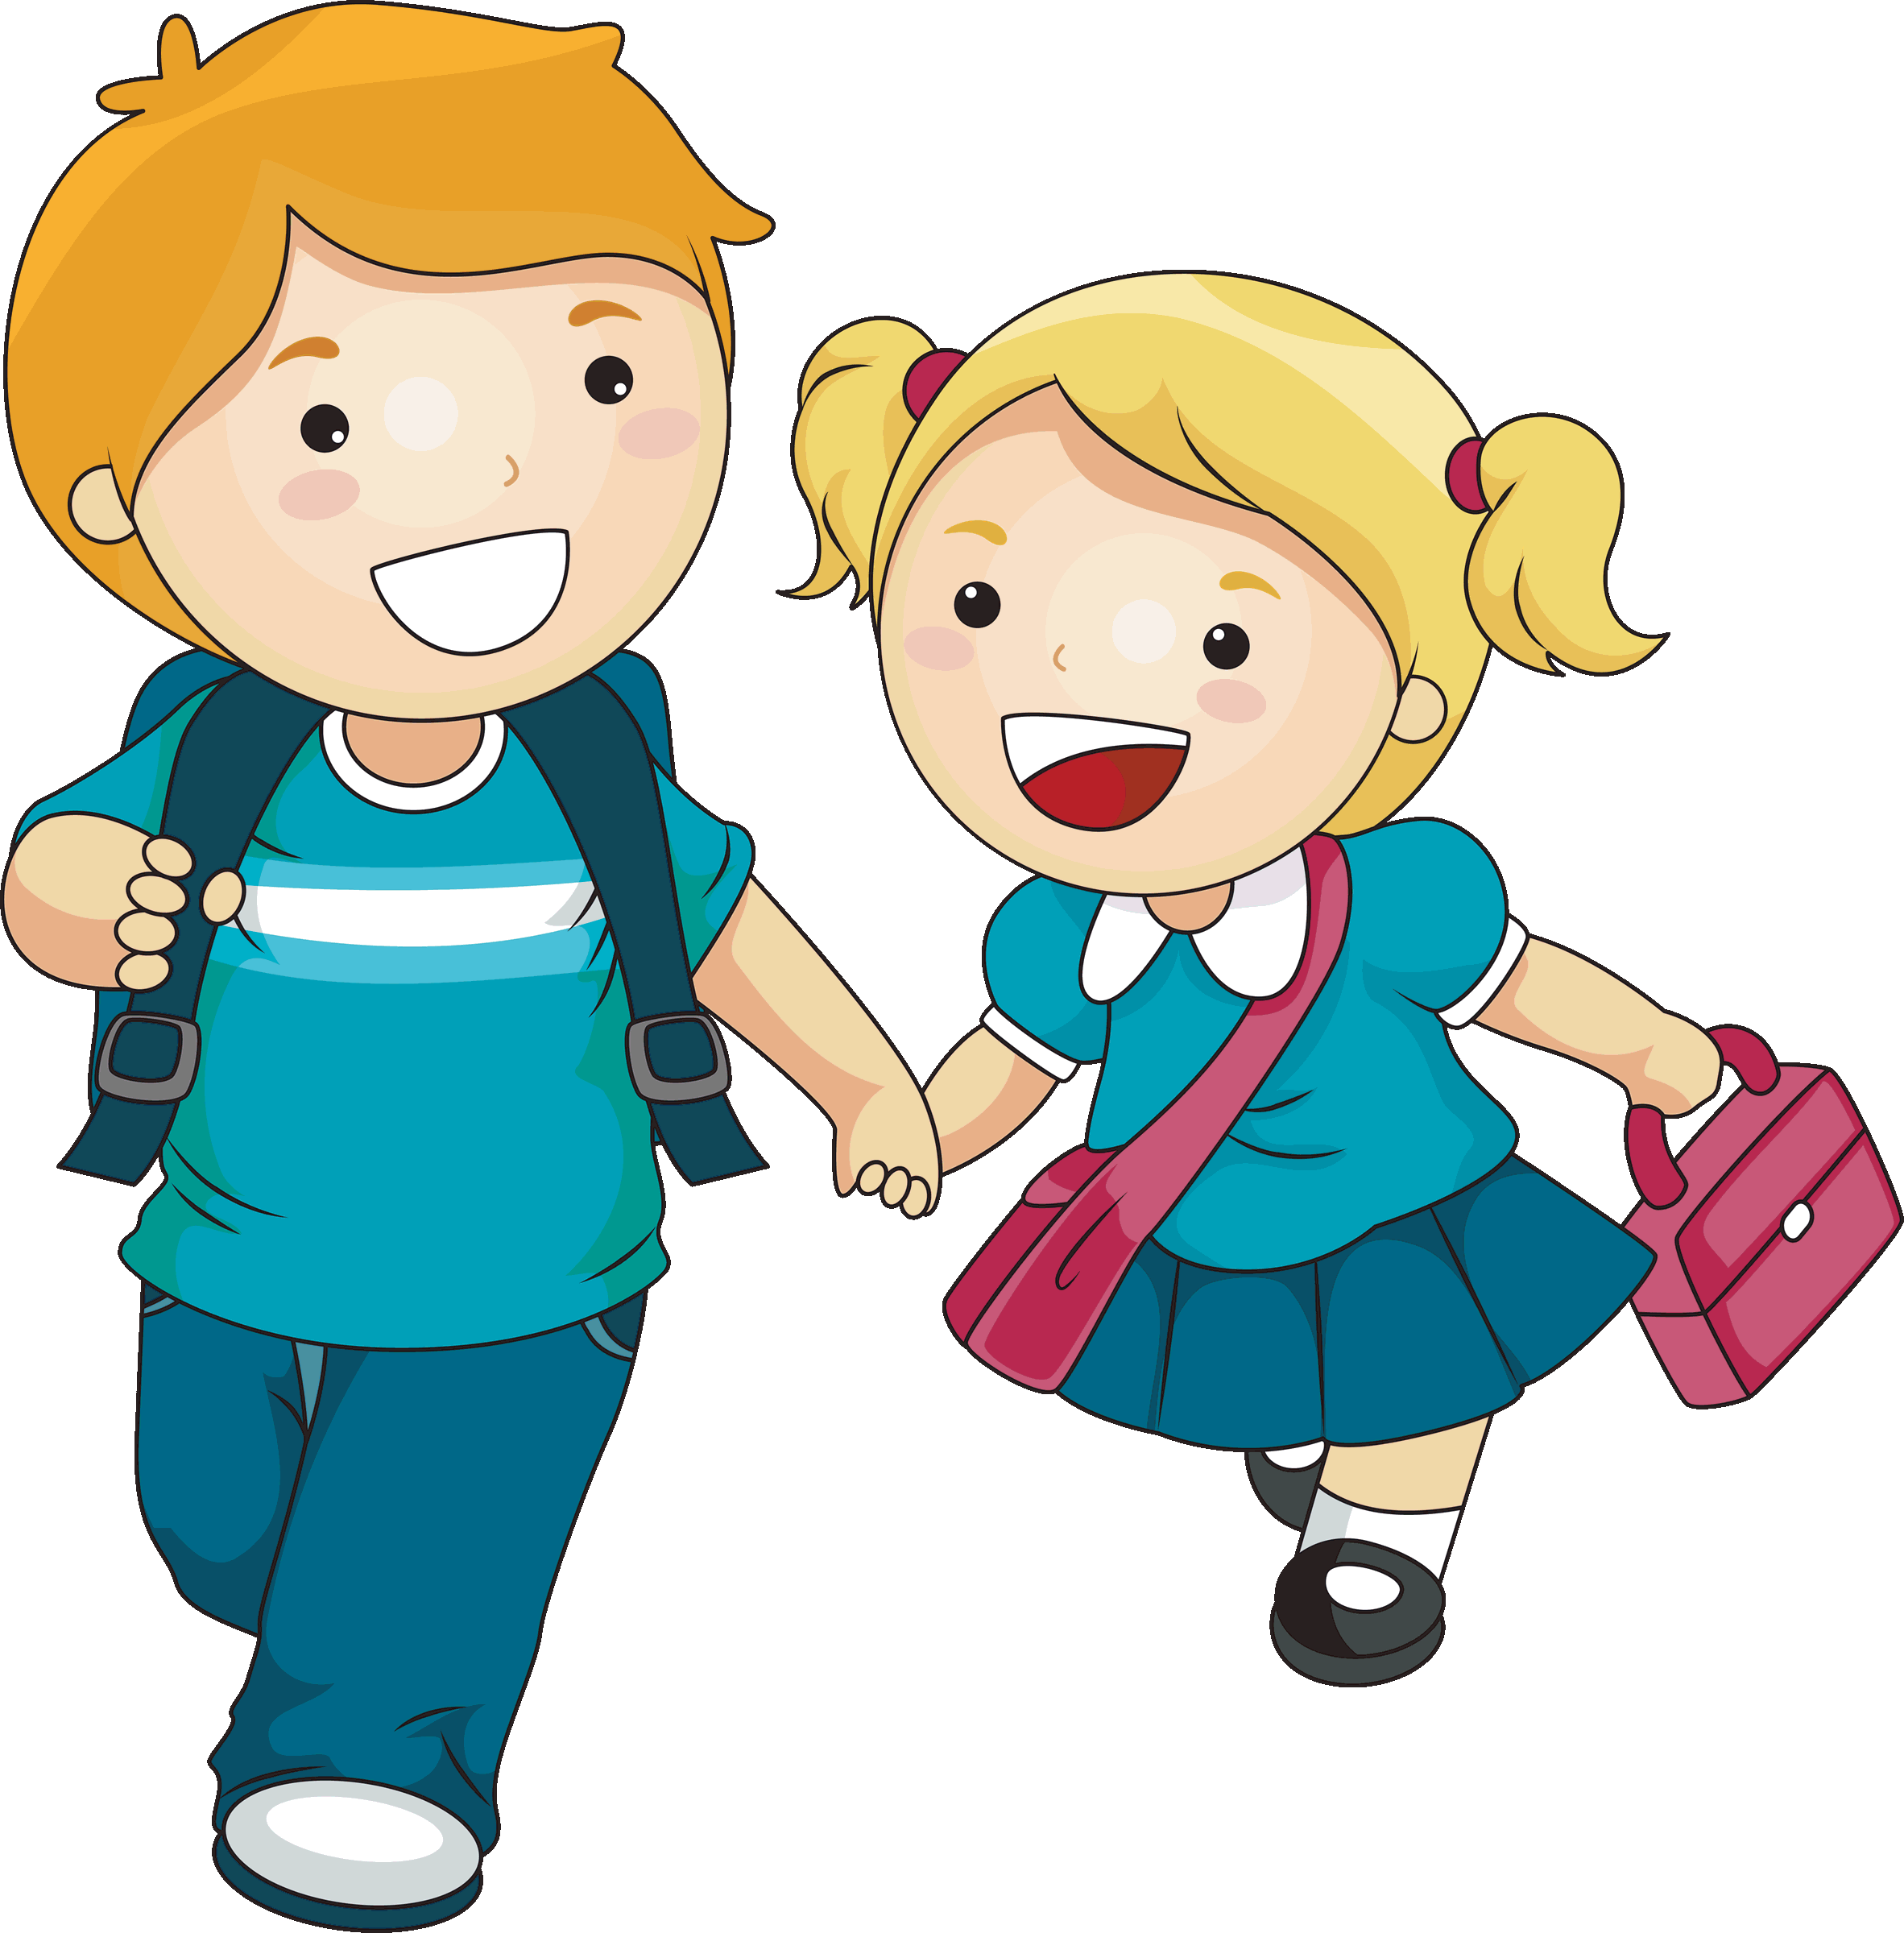 2364x2400 Dancing Kids Png Hd Transparent Dancing Kids Hd.png Images. Pluspng